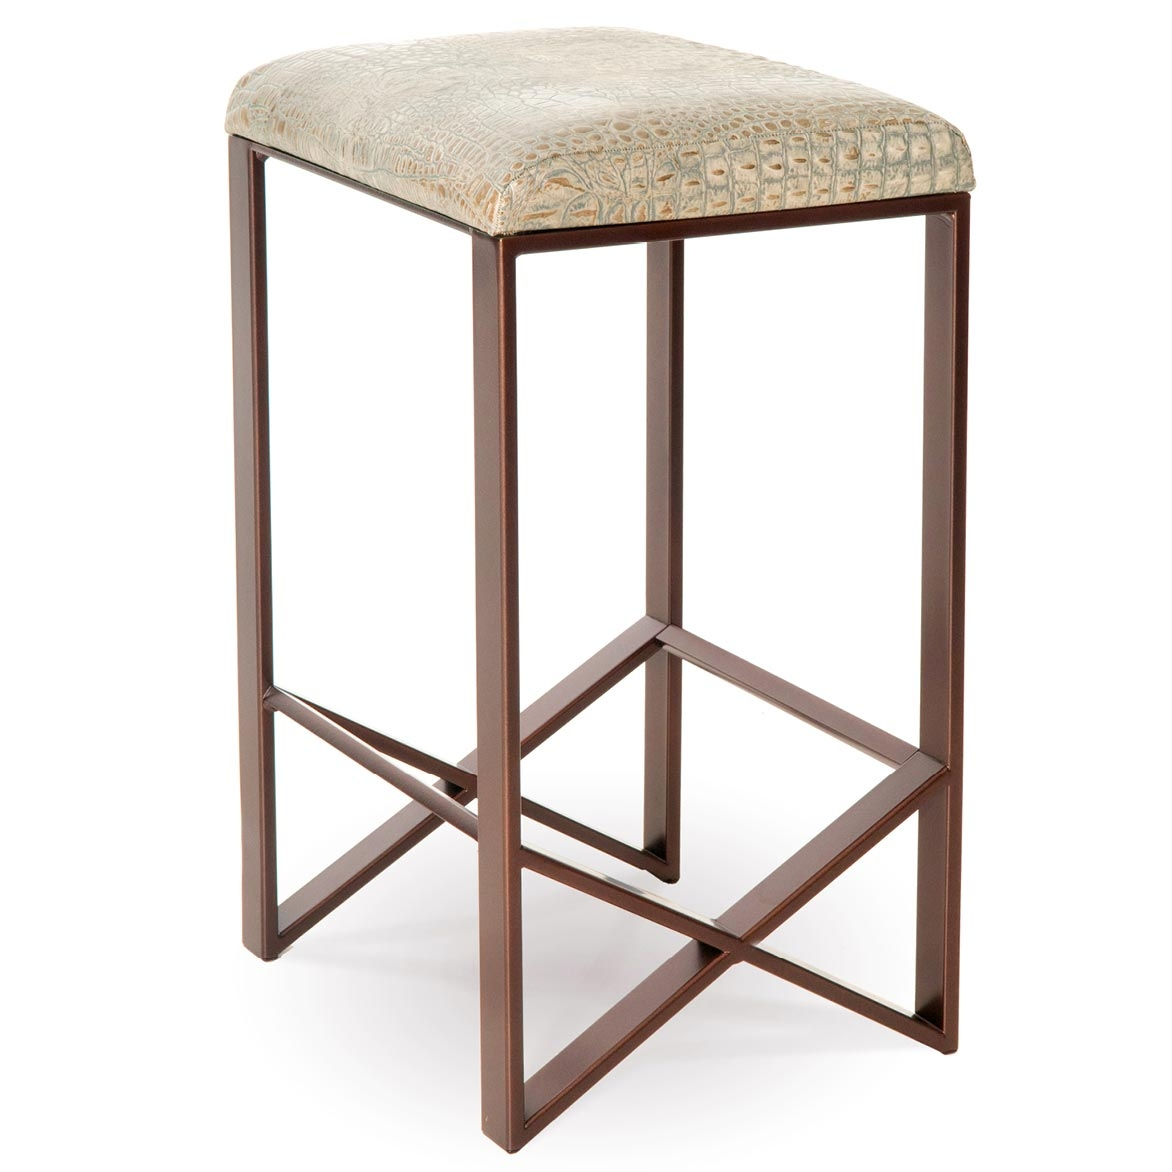 Pictured Here Is The Victoria Backless Counter Stool Quality Hand Forged Construction With - Backless Stools